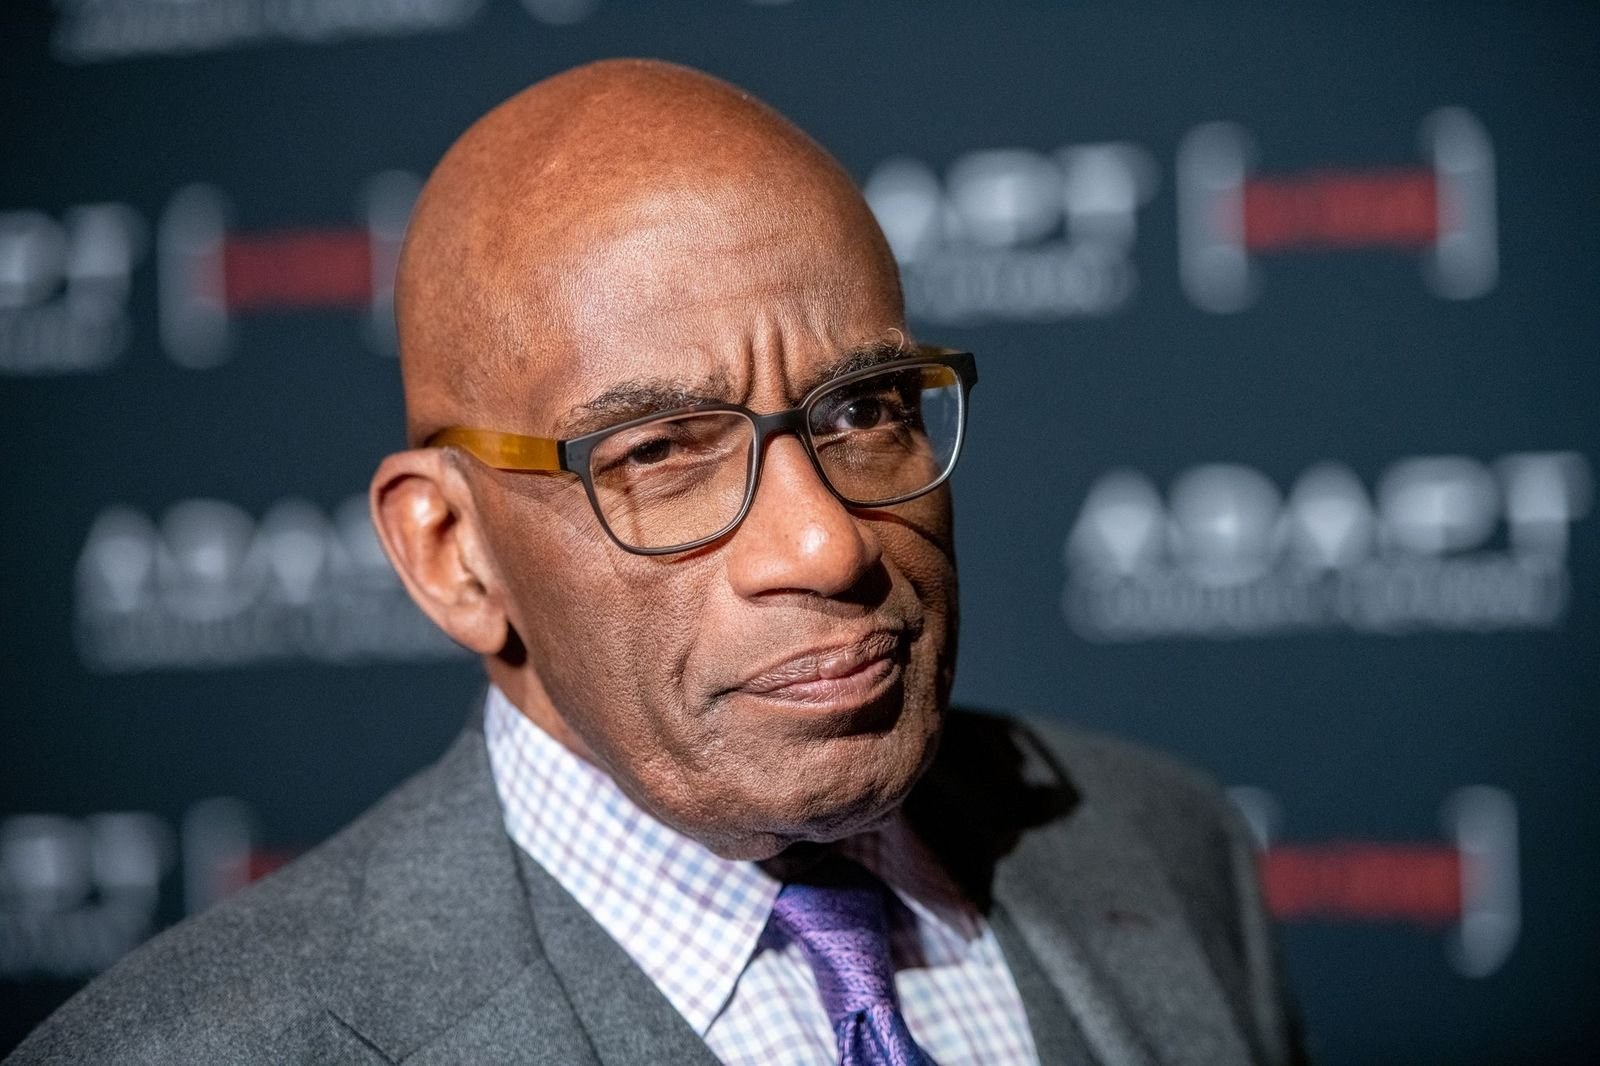 Al Roker at the 2019 Adapt Leadership Awards on March 14, 2019 in New York | Getty Images